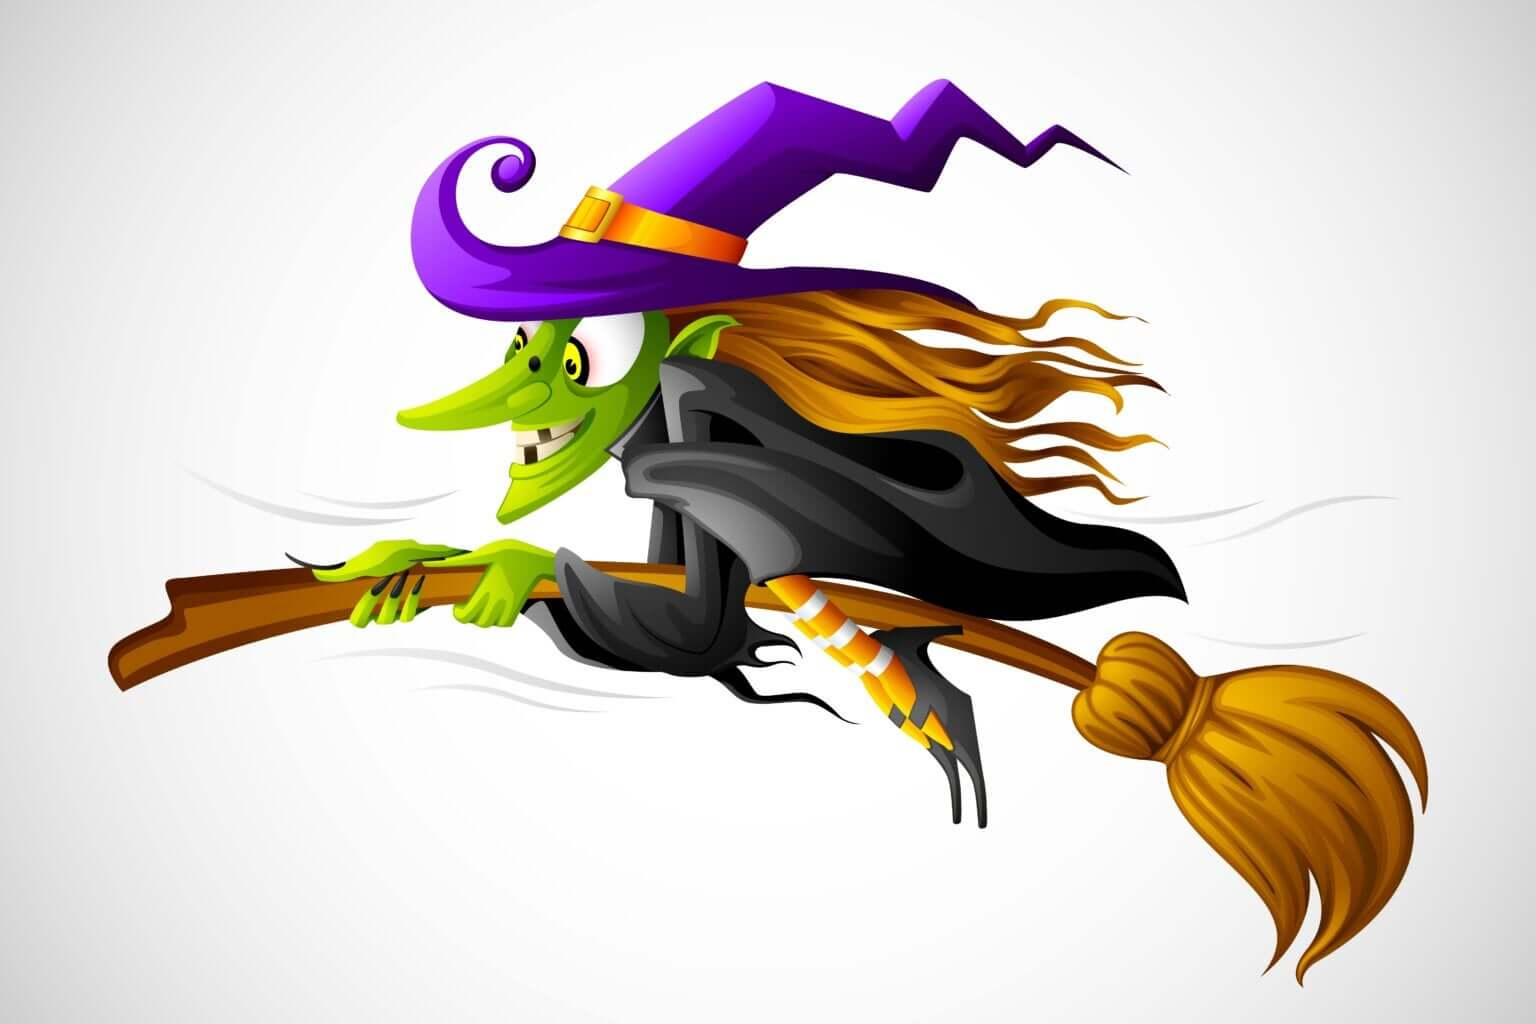 A cartoon drawing of a witch riding on a broom.